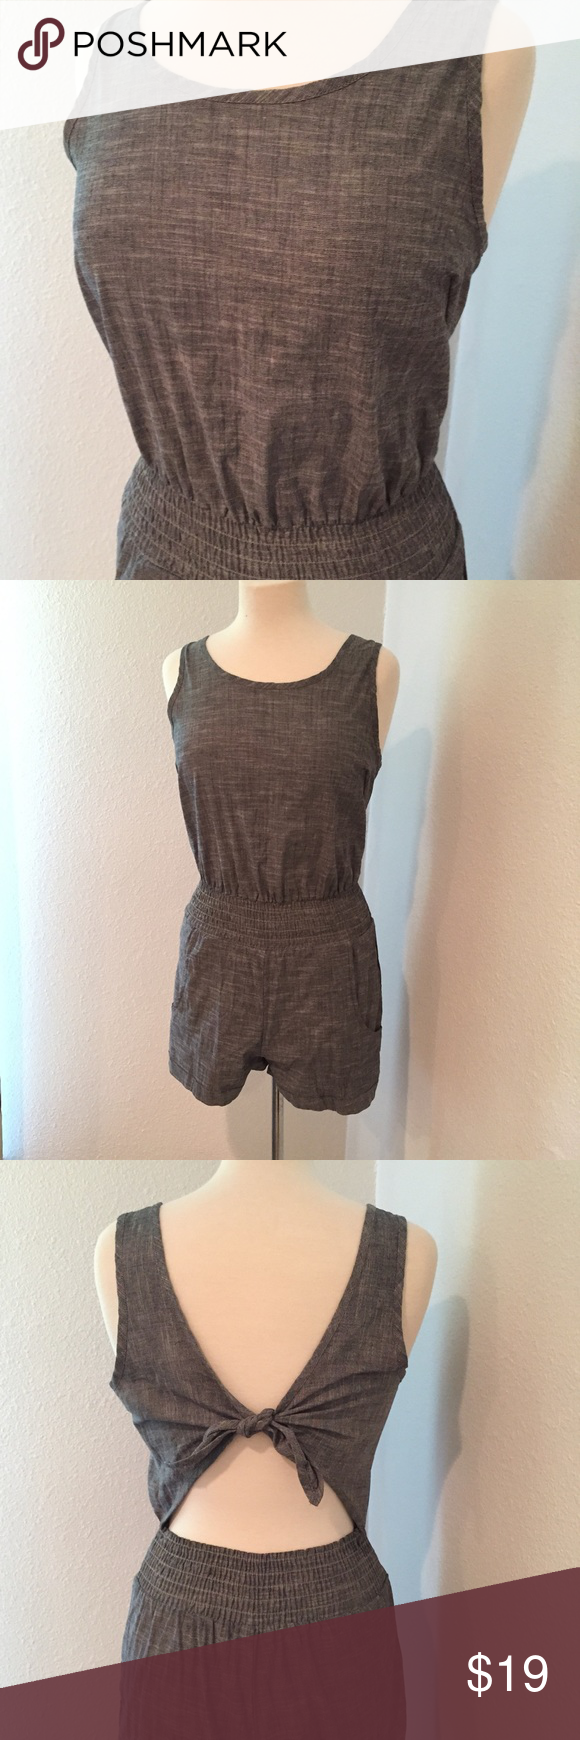 45a6297e7a13 True Religion Chambray Tie Back Romper Such a cute Romper! Dress it up with  accessories. In very good condition. True Religion Pants Jumpsuits   Rompers